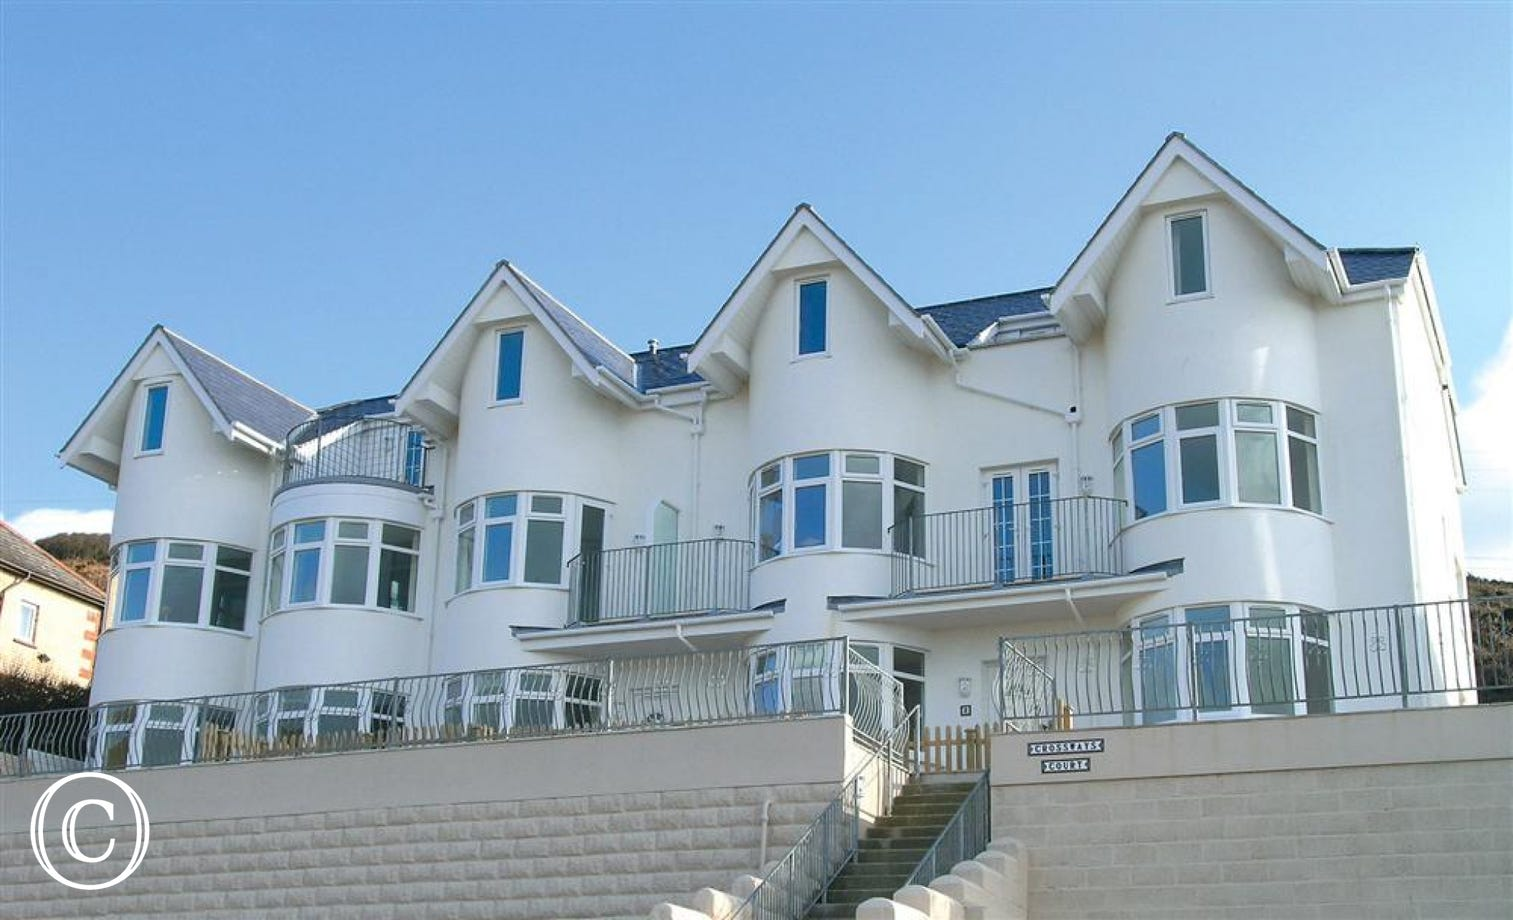 Kittiwake is on the far left hand side of Crossways Court in Woolacombe